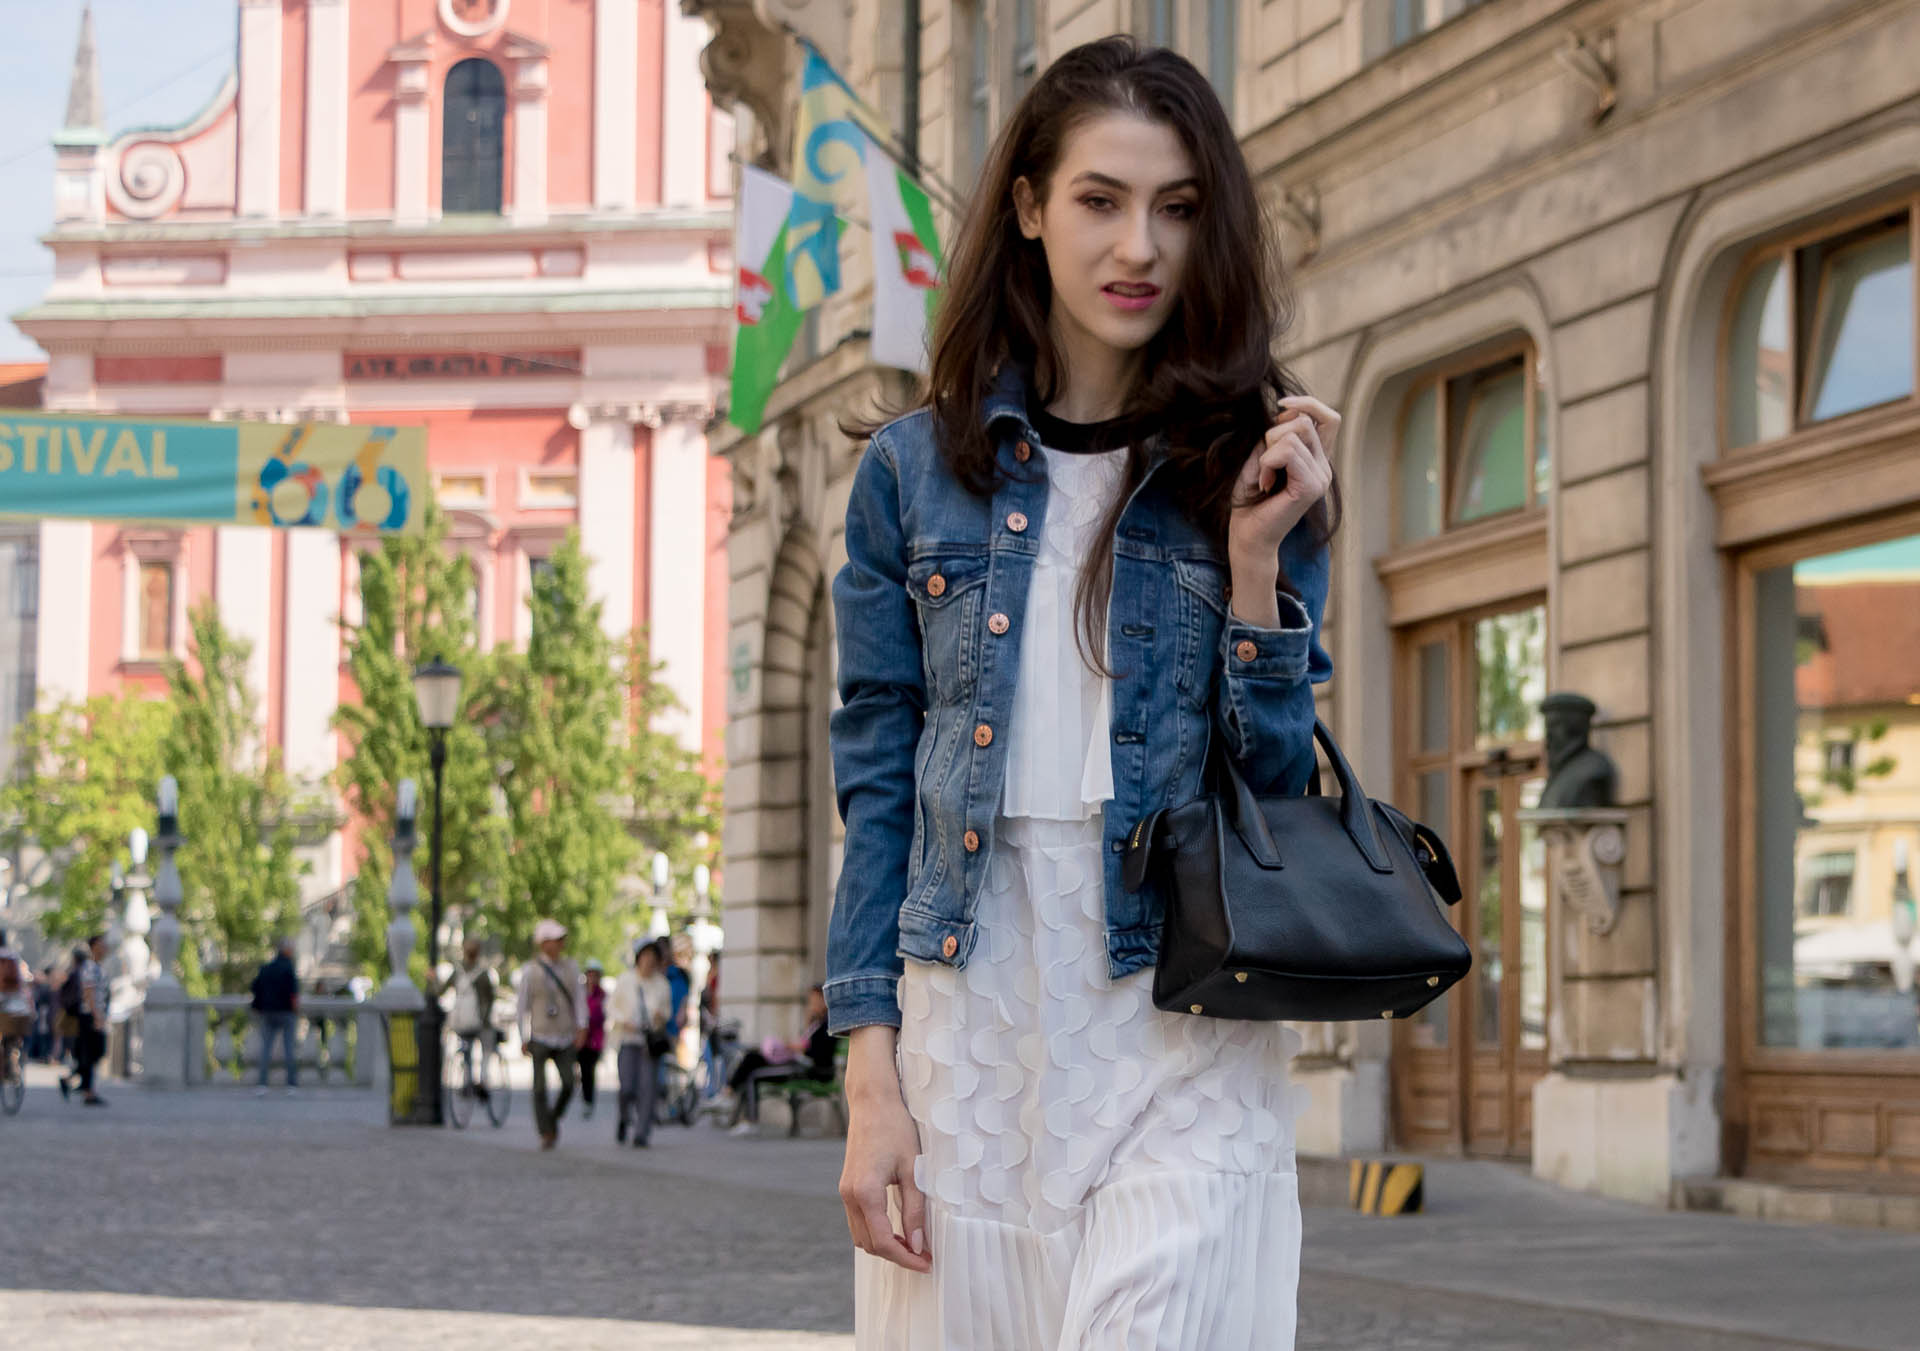 Veronika Lipar Fashion Editor of Brunette from Wall Street wearing H&M blue denim jacket, Storets white pleated short dress, small tote bag